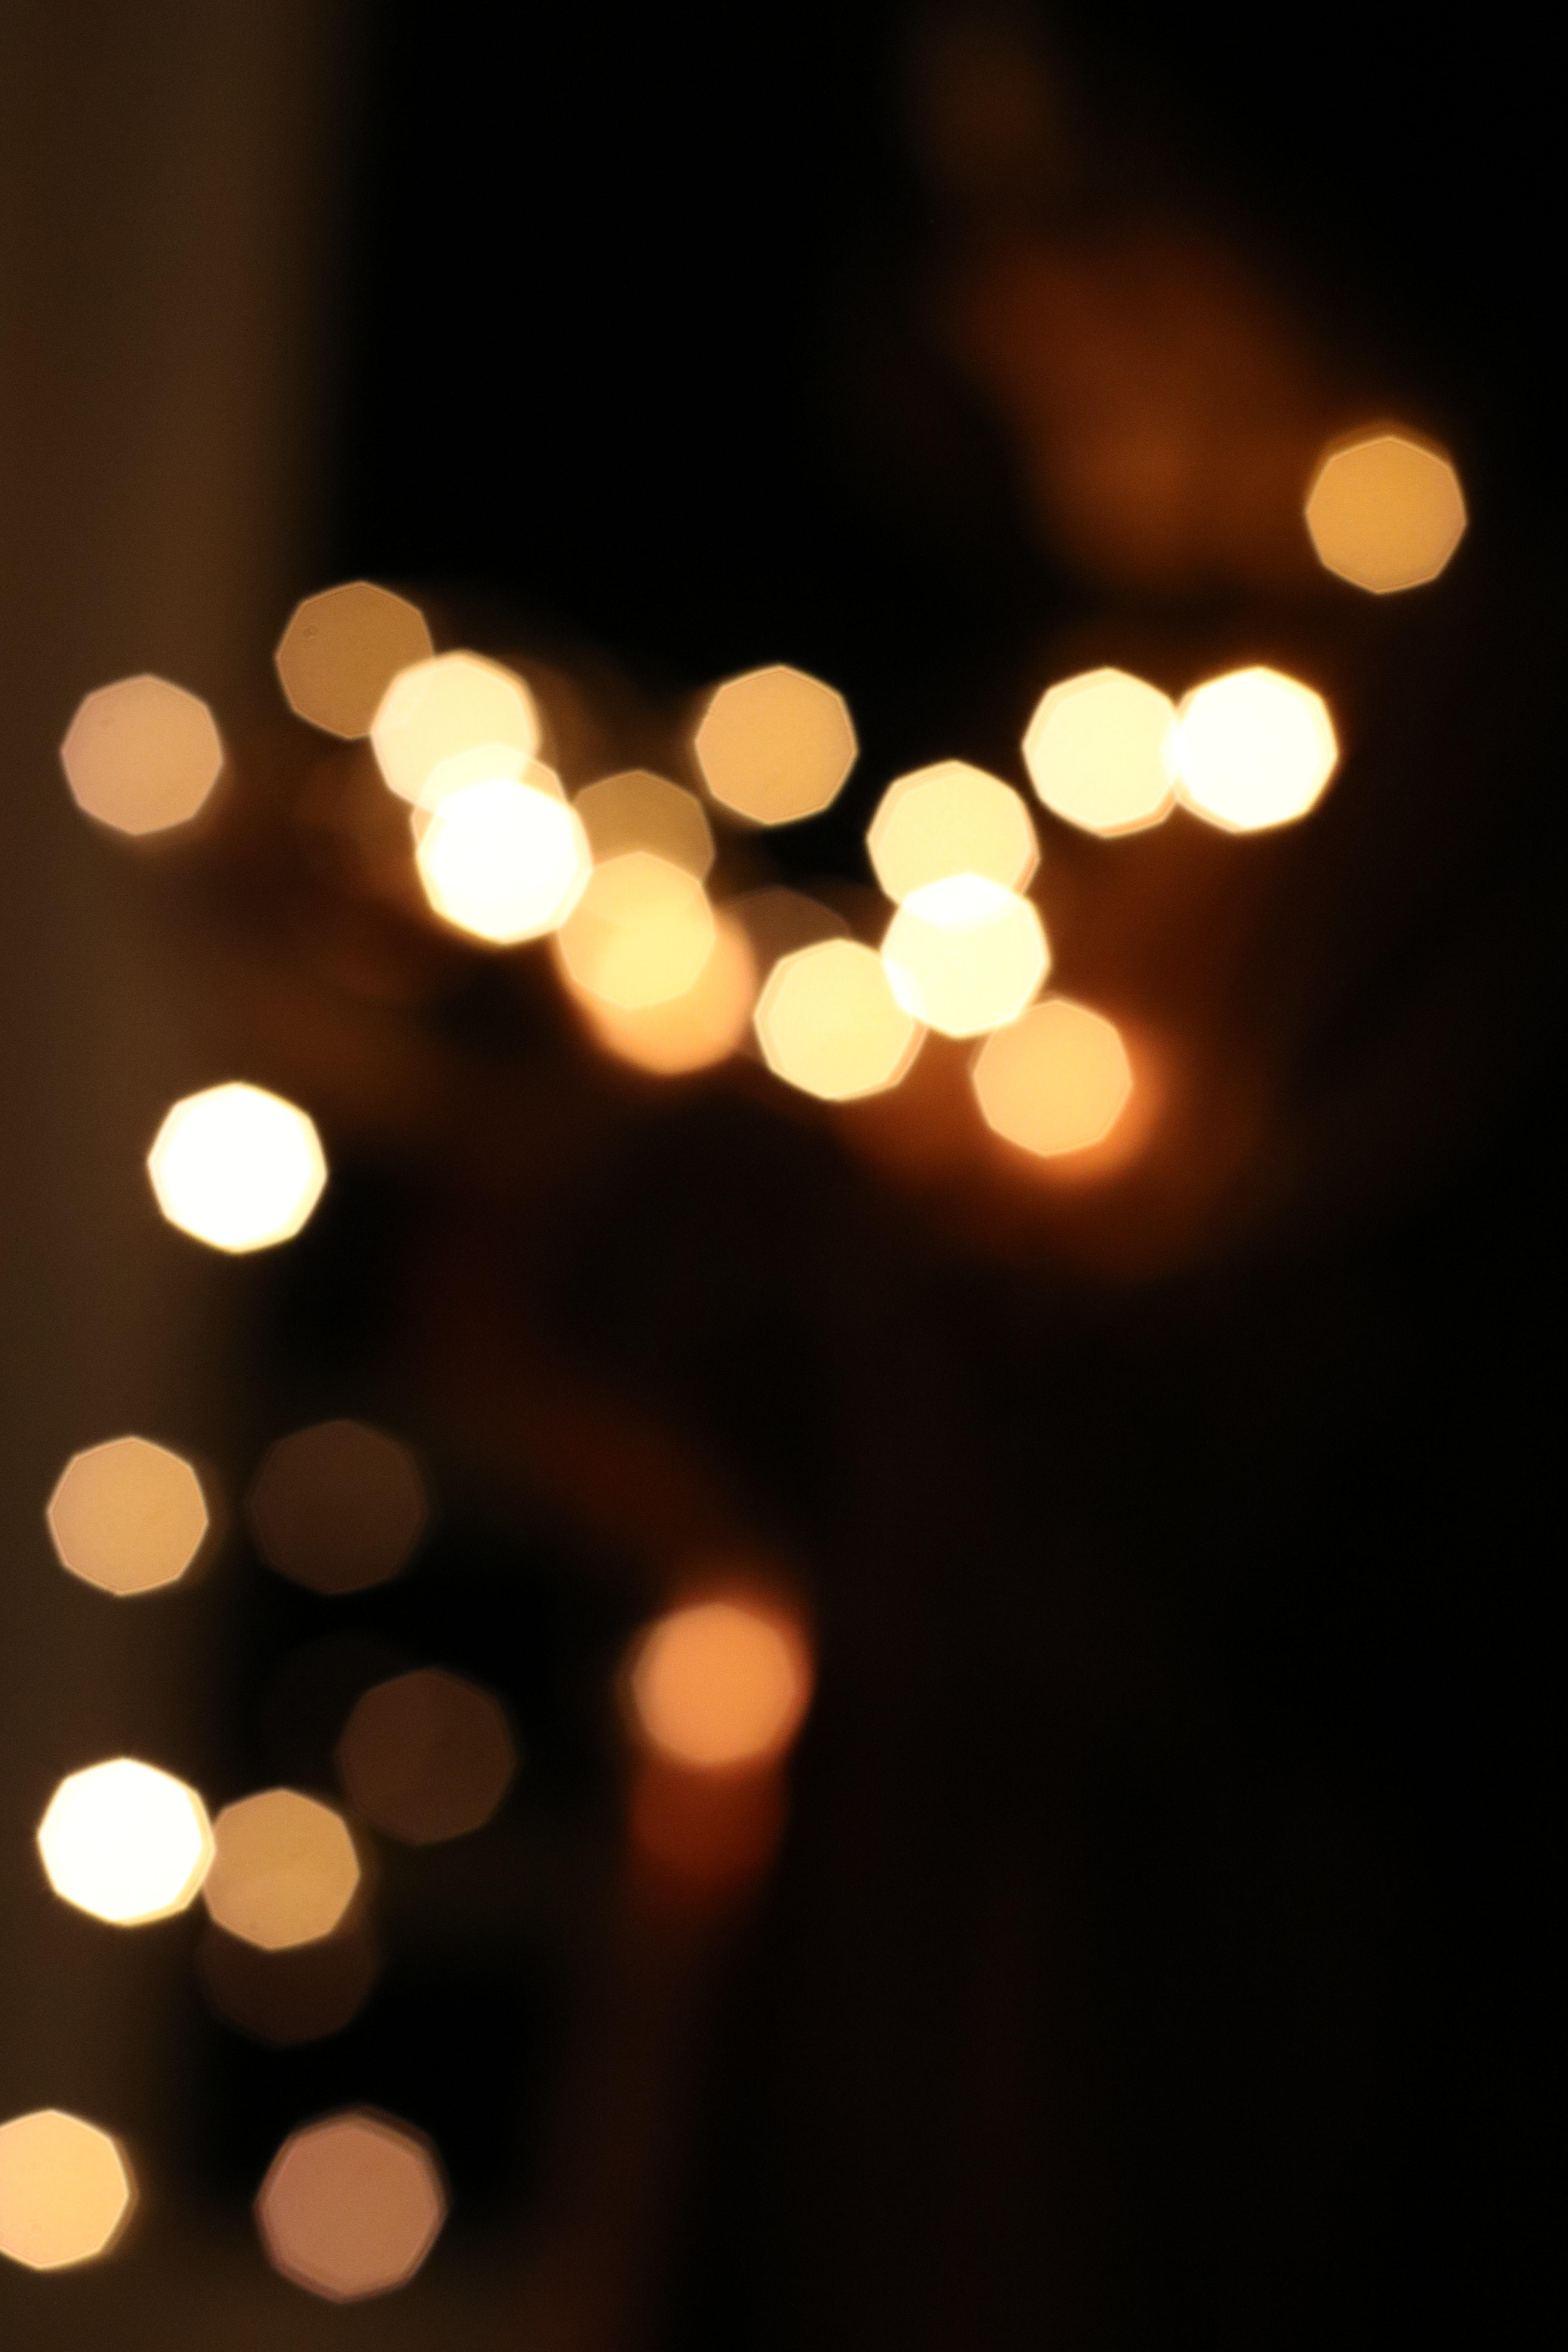 Out of Focus Photo of Lights in Bokeh Photography · Free